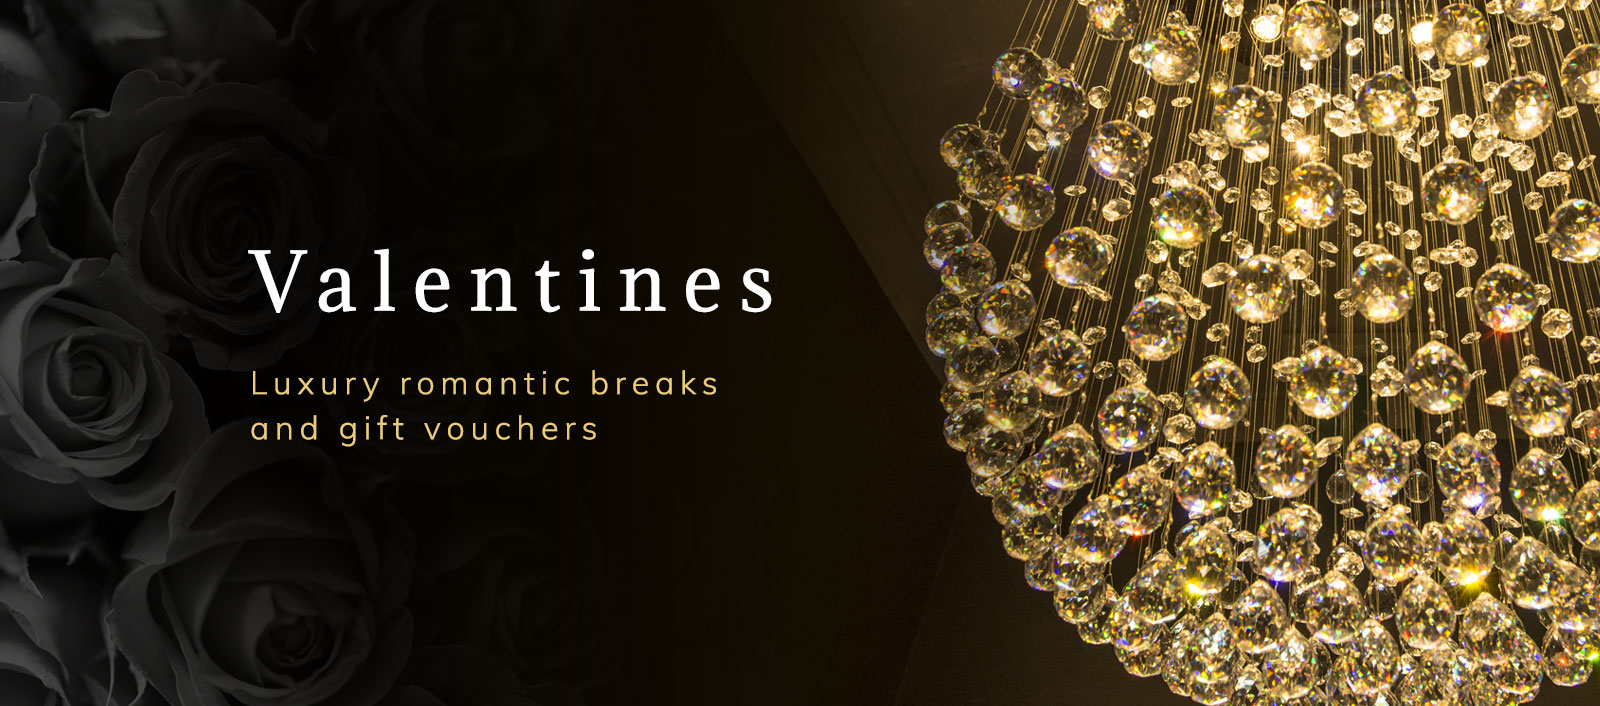 Romantic breaks and gift vouchers.